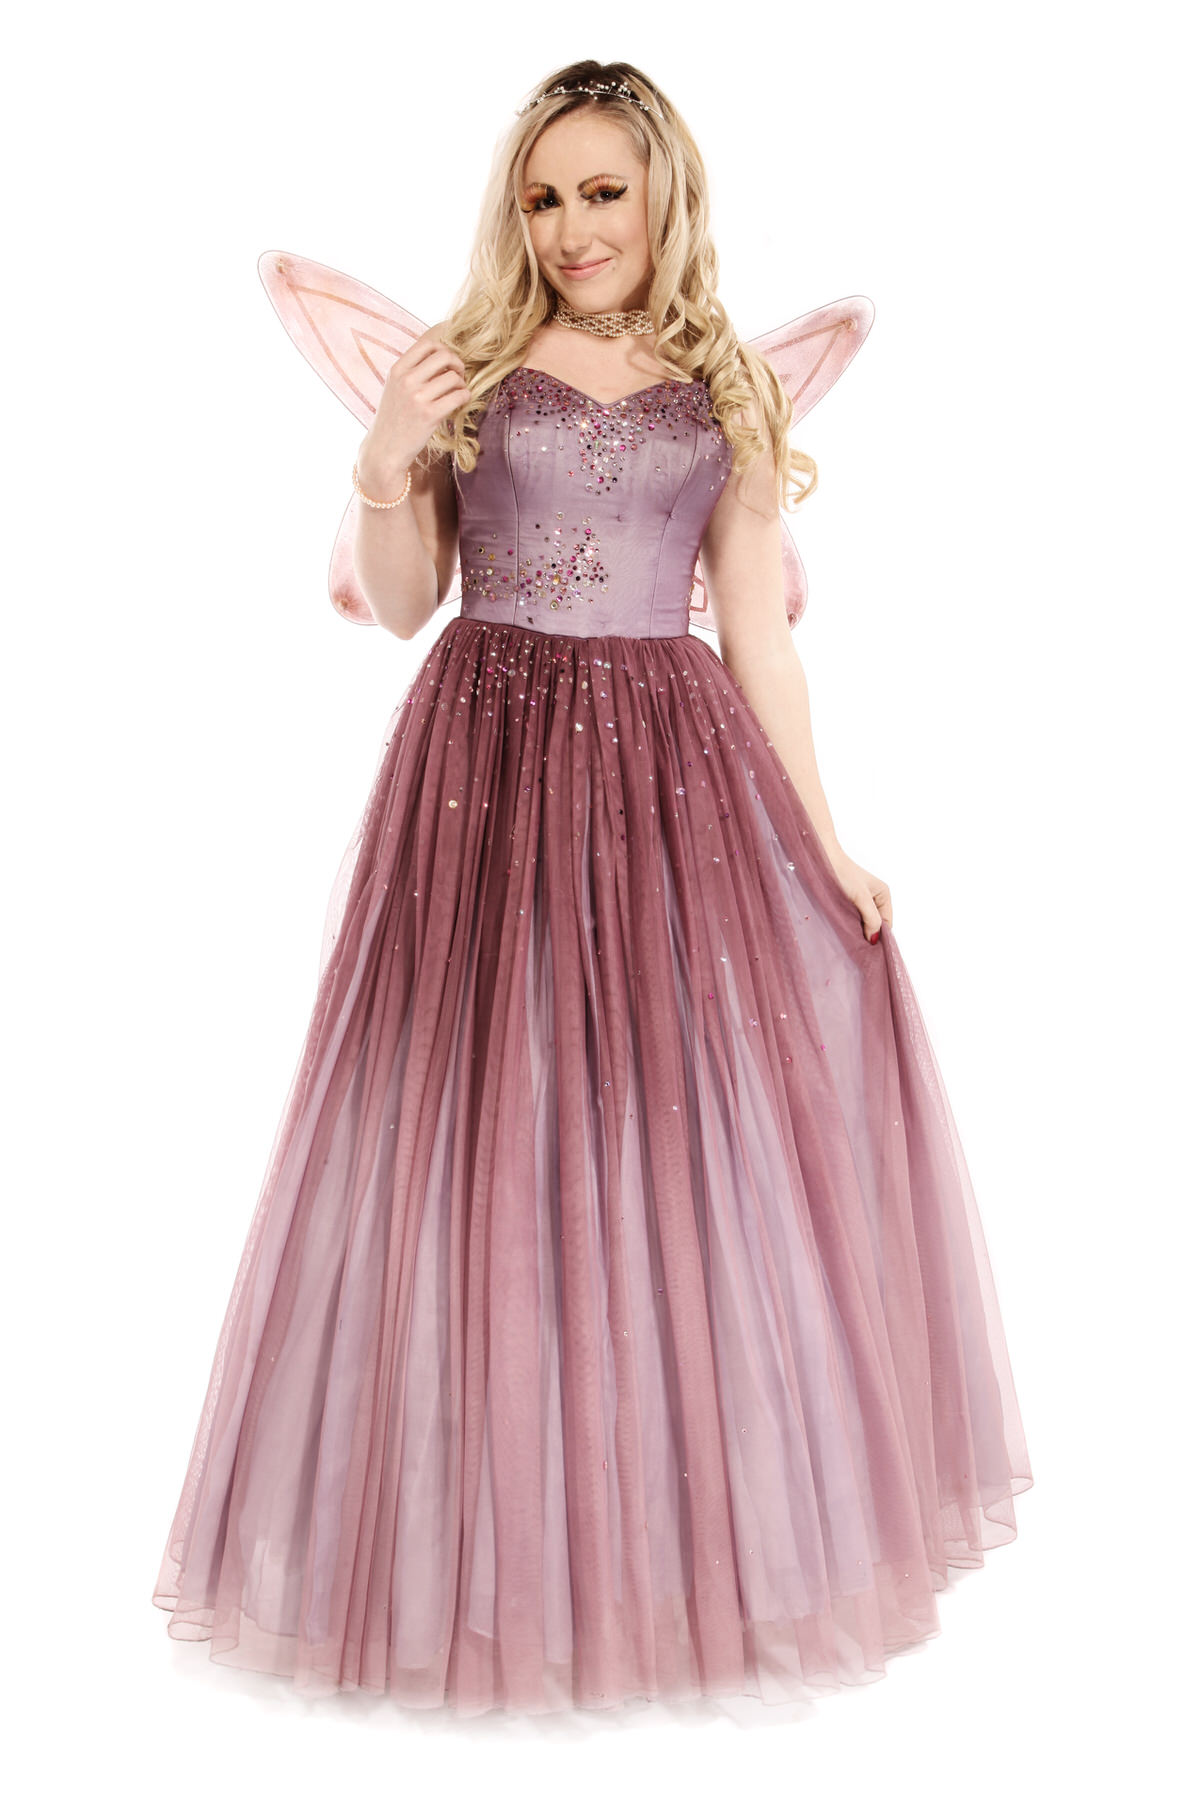 FAIRY PRINCESS COSTUME W WINGS & PEARL TIARA